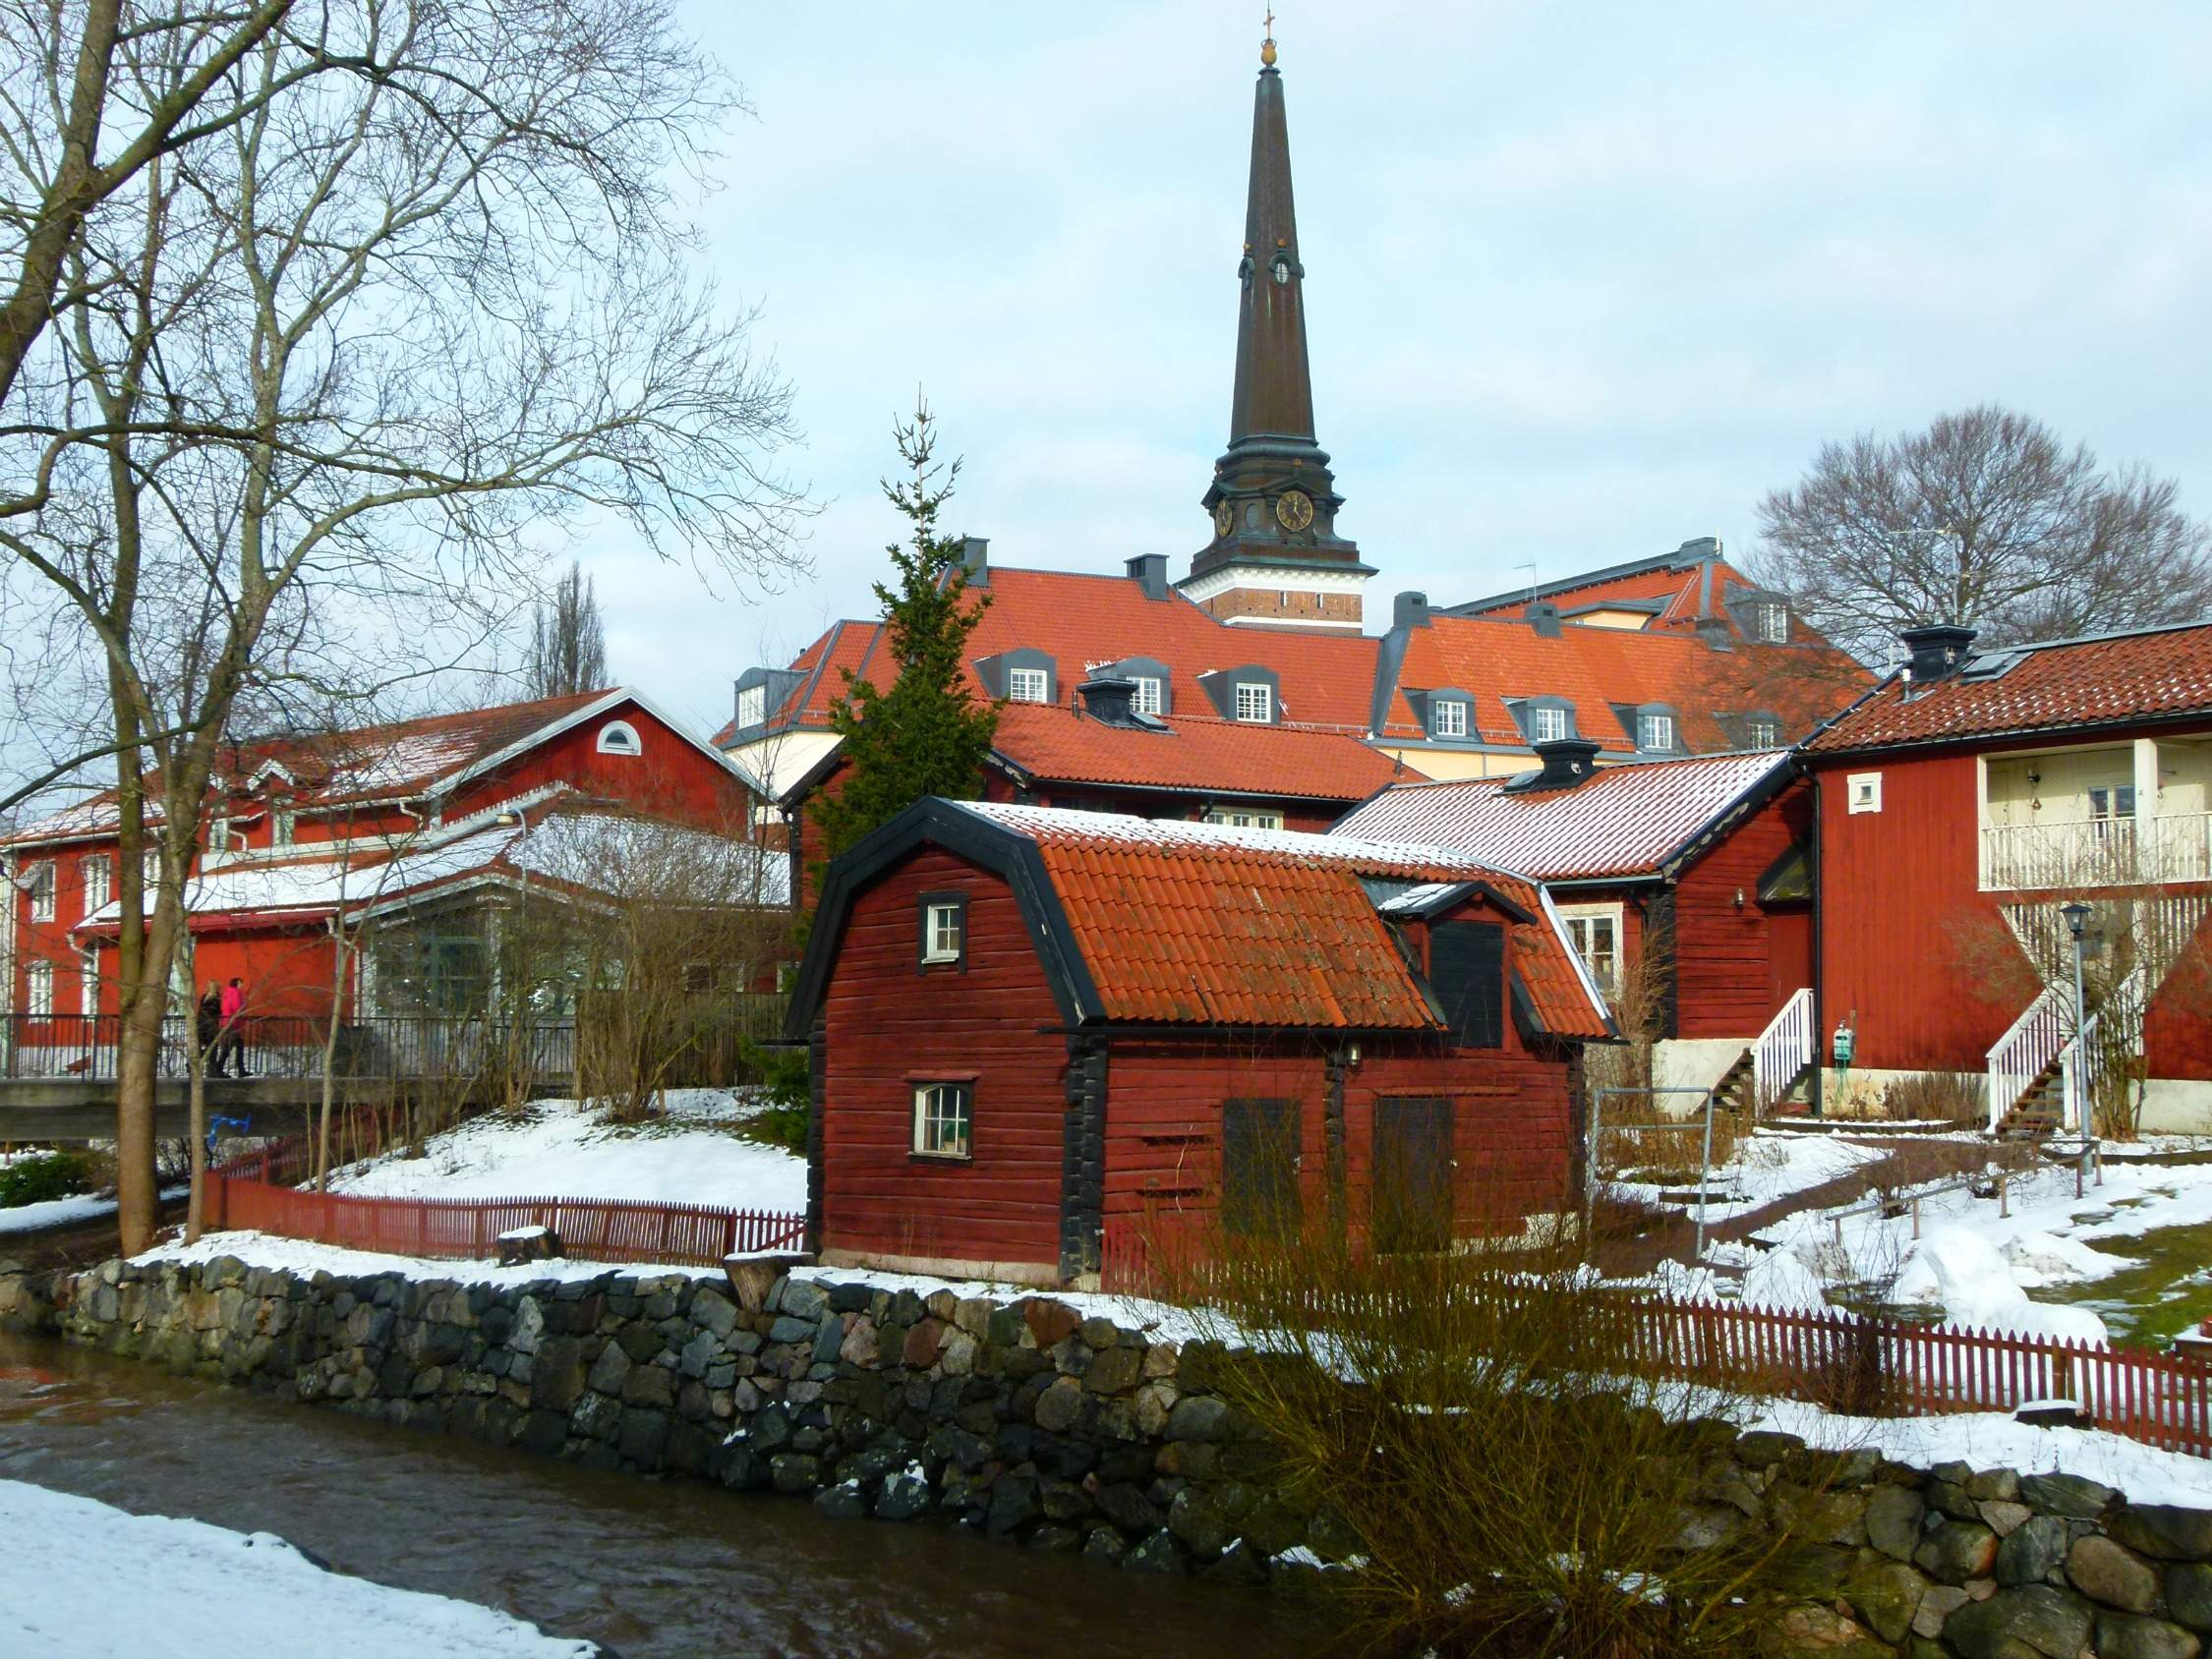 P1070738 560x420 - Experiencing Sweden in a Nutshell – A Visit to Västerås